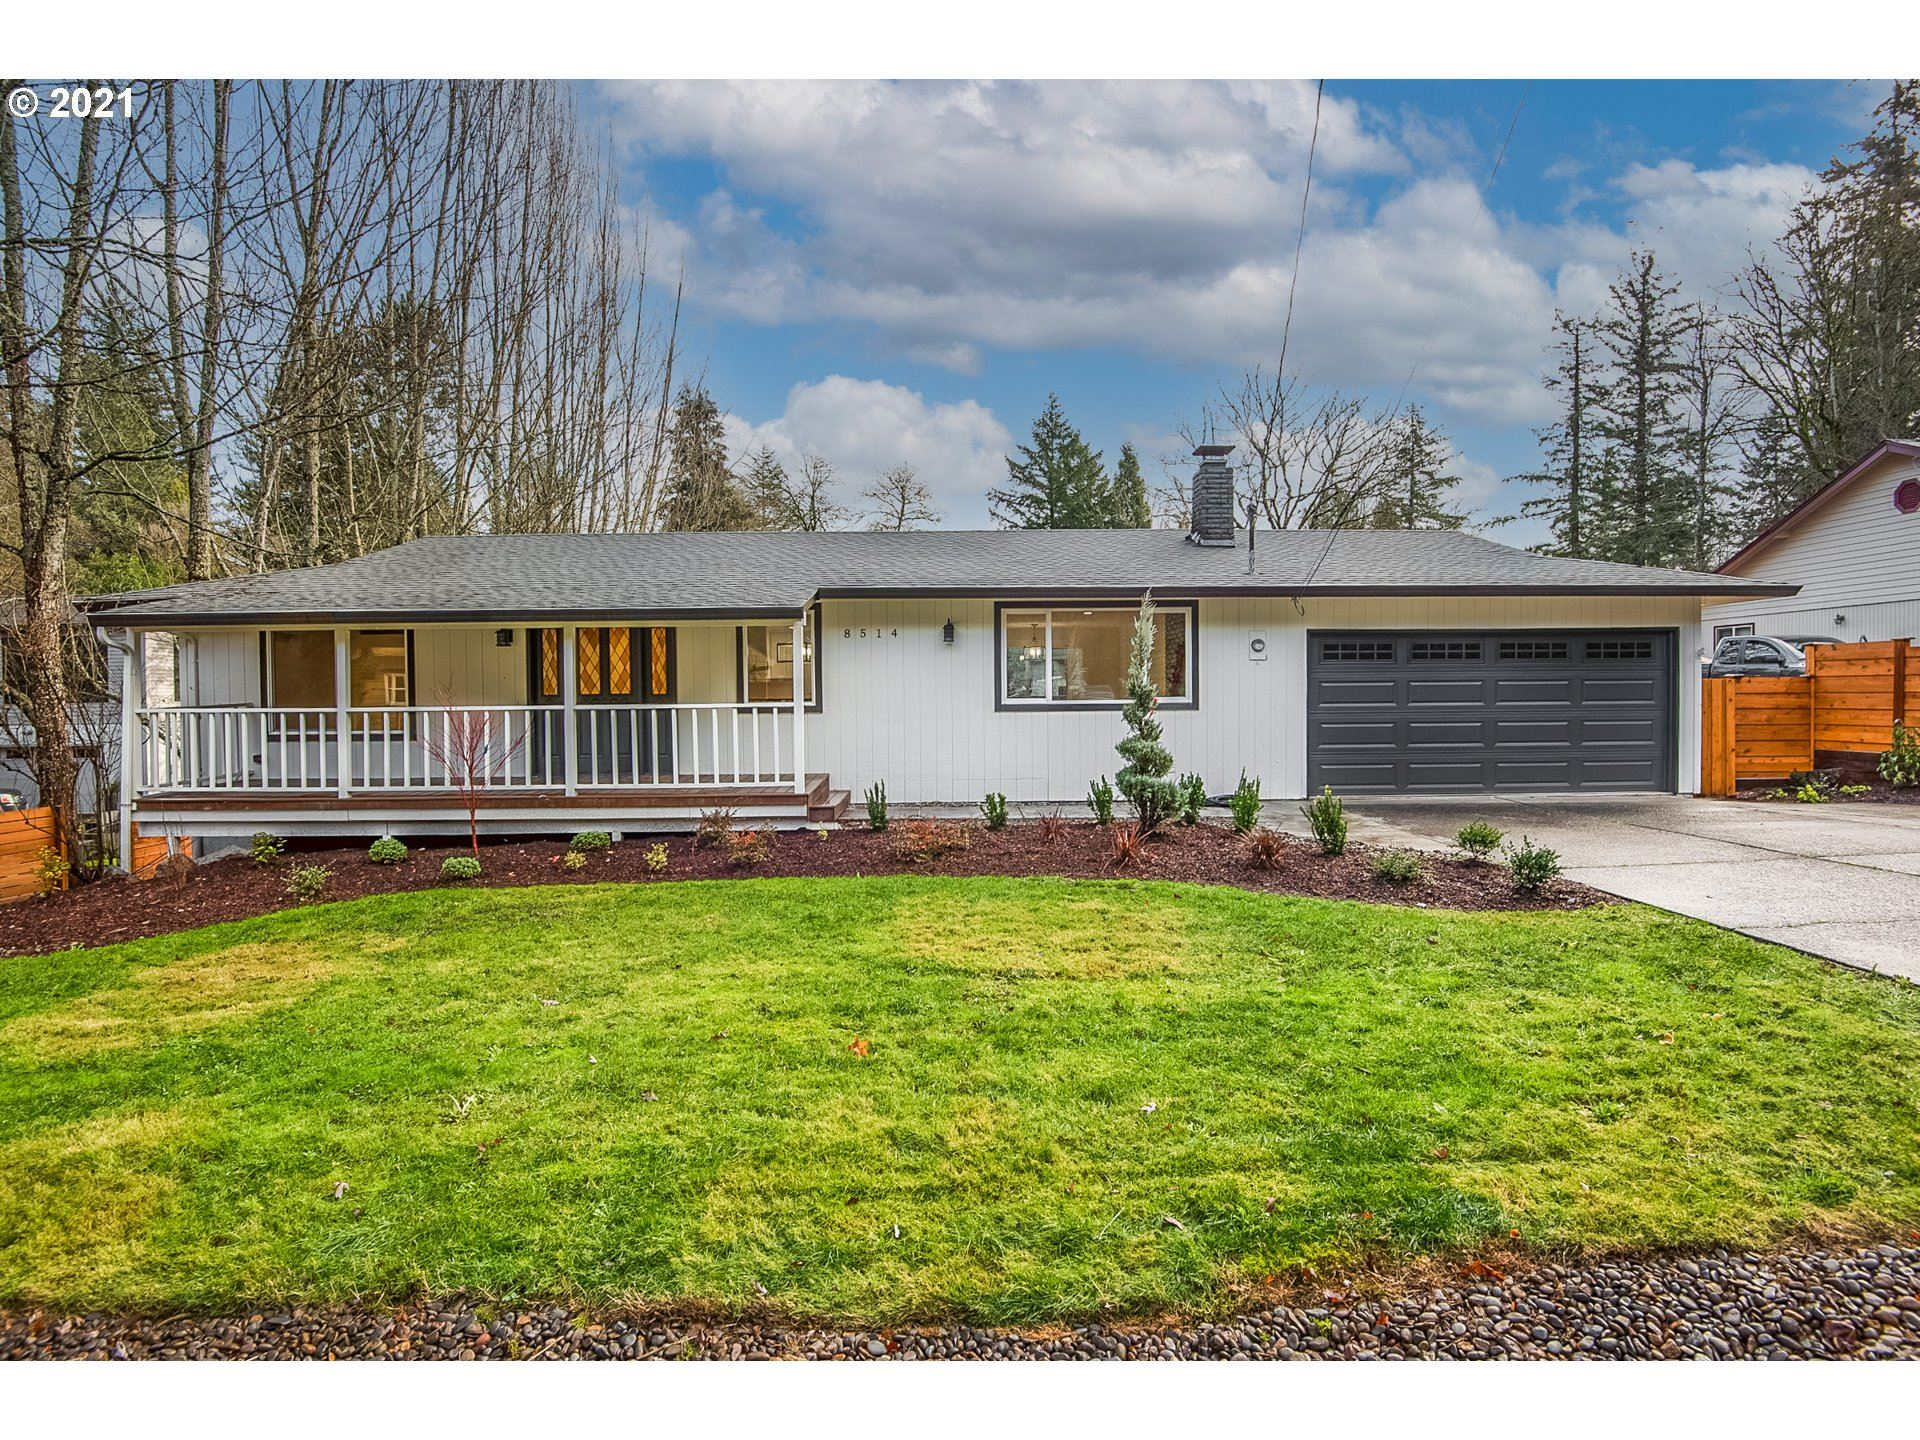 8514 SW 54TH AVE, Portland, OR 97219 - MLS#: 21251644